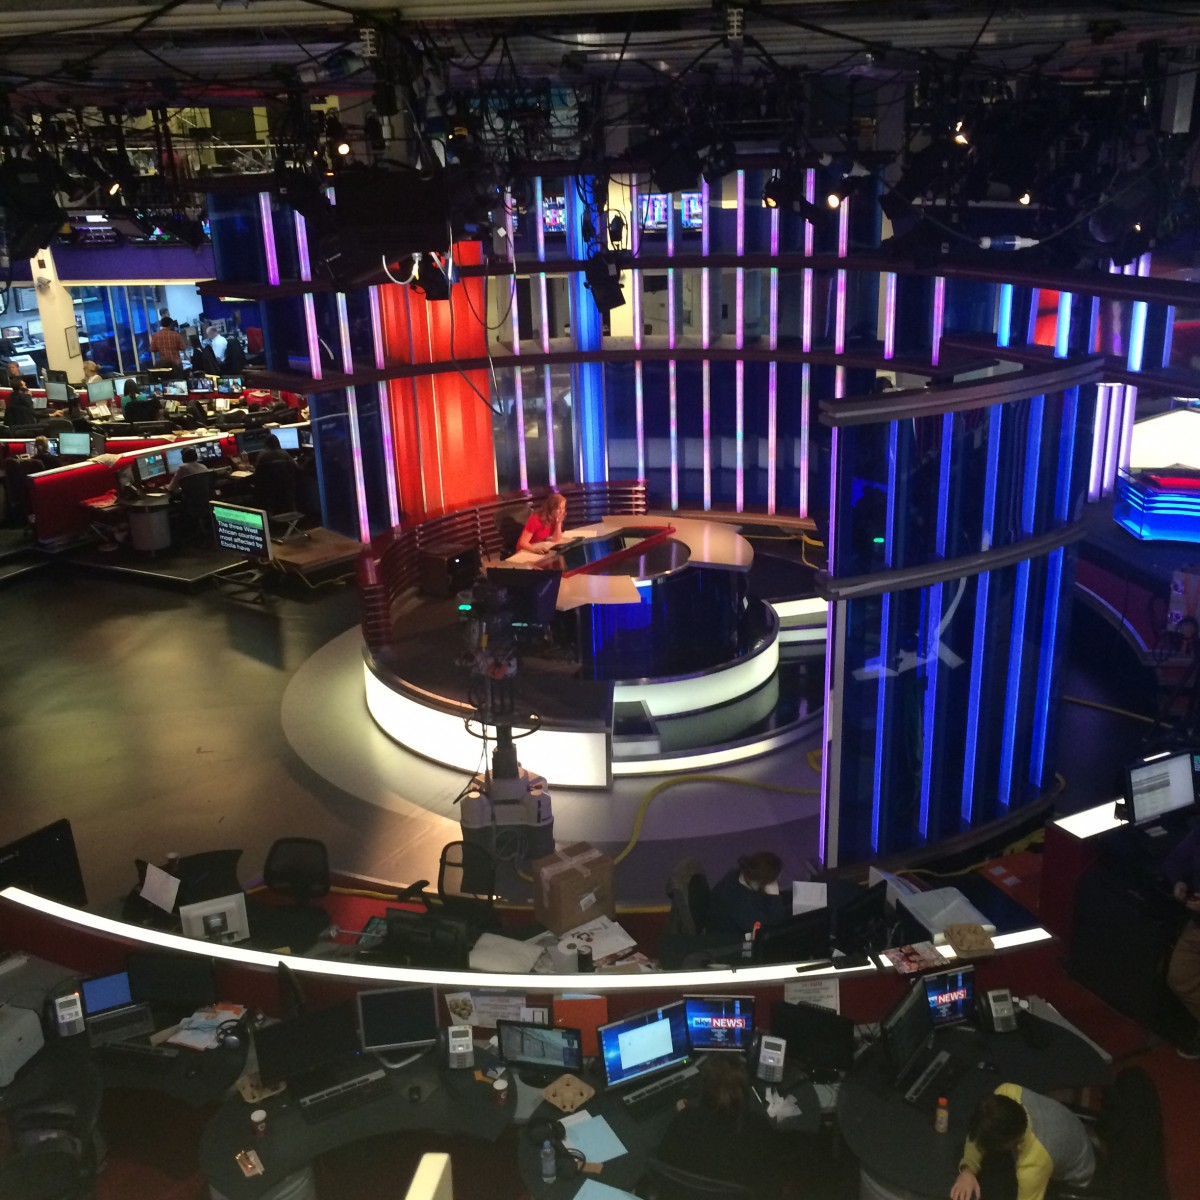 SKY NEWS - the newsroom